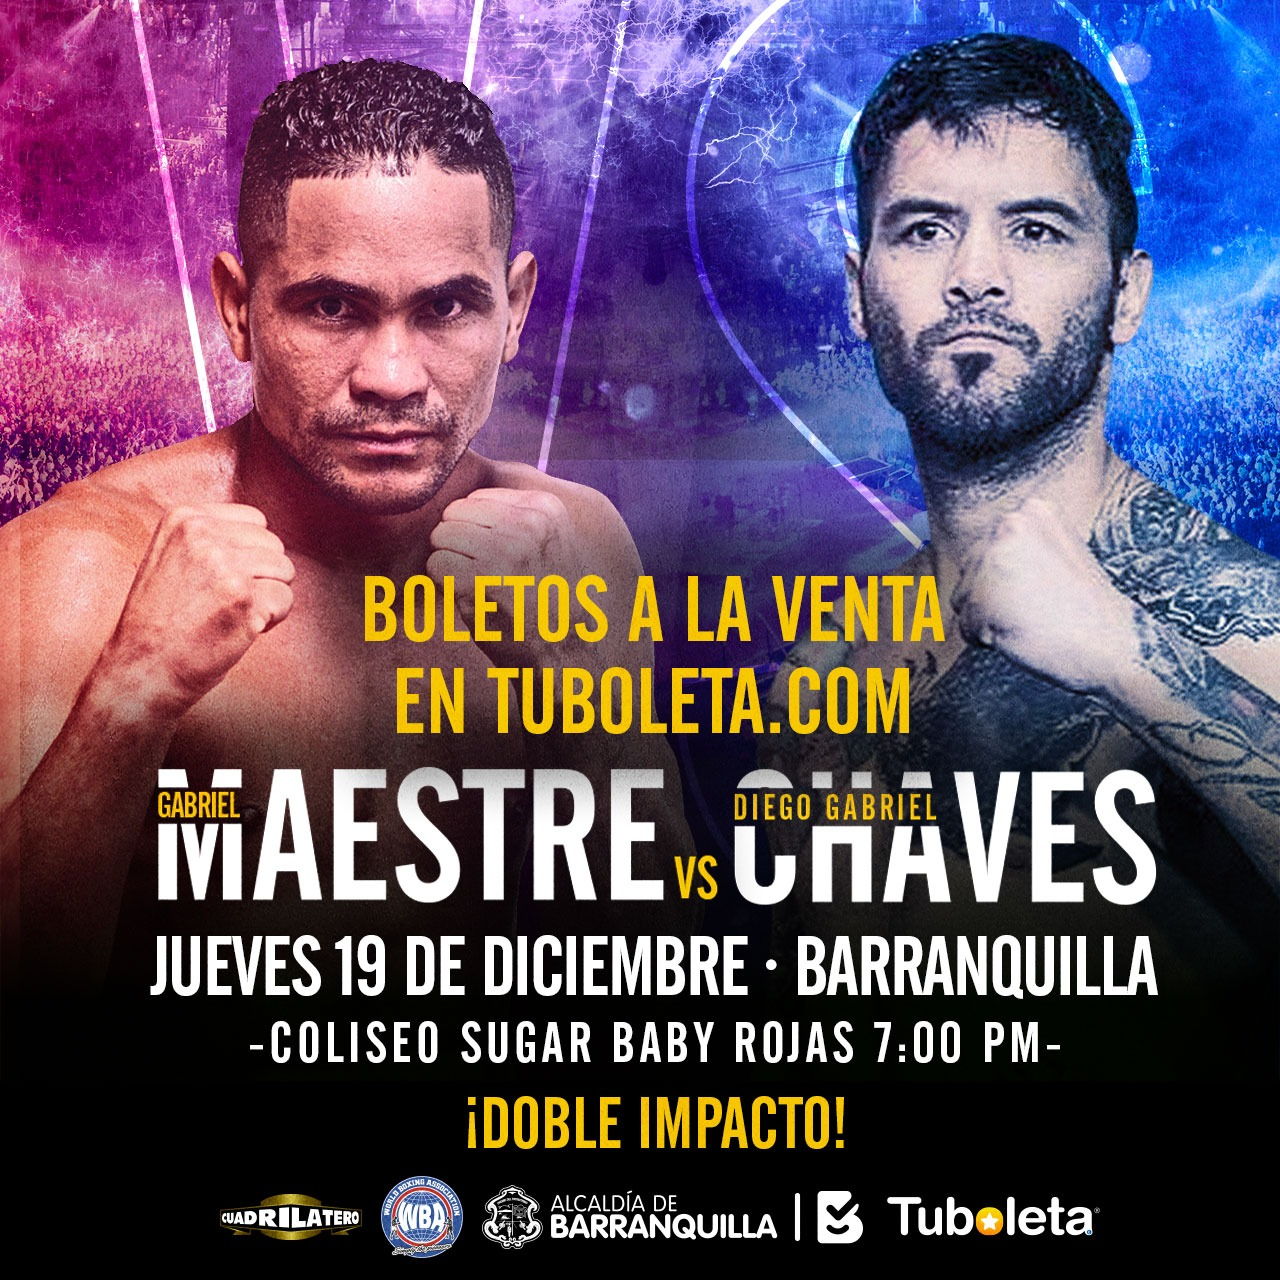 """Doble Impacto"" will paralyze Barranquilla with Maestre-Chaves as main event"